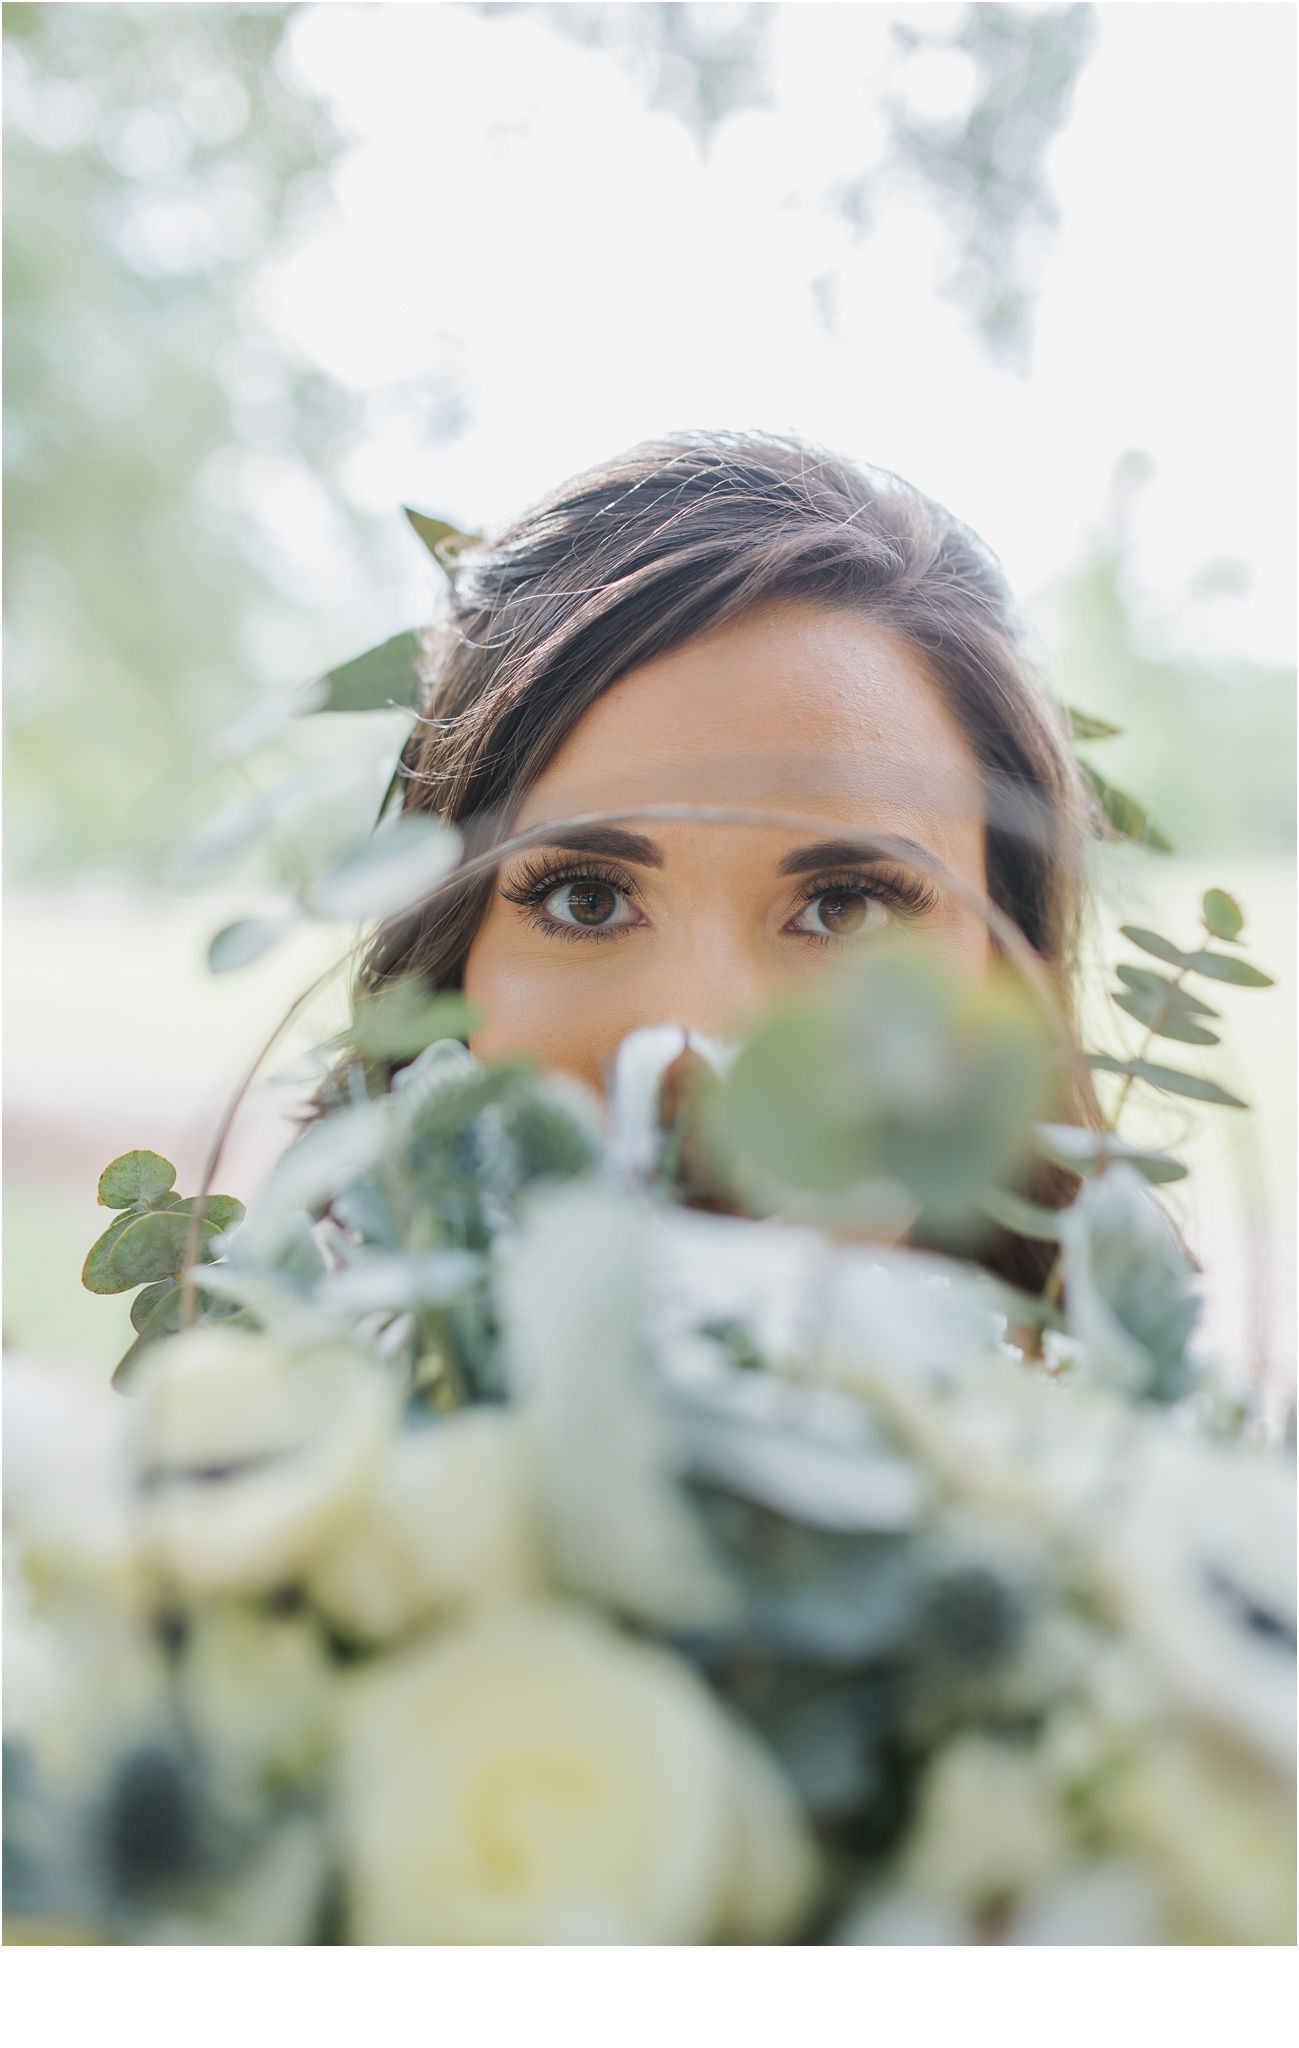 Rainey_Gregg_Photography_St._Simons_Island_Georgia_California_Wedding_Portrait_Photography_0919.jpg